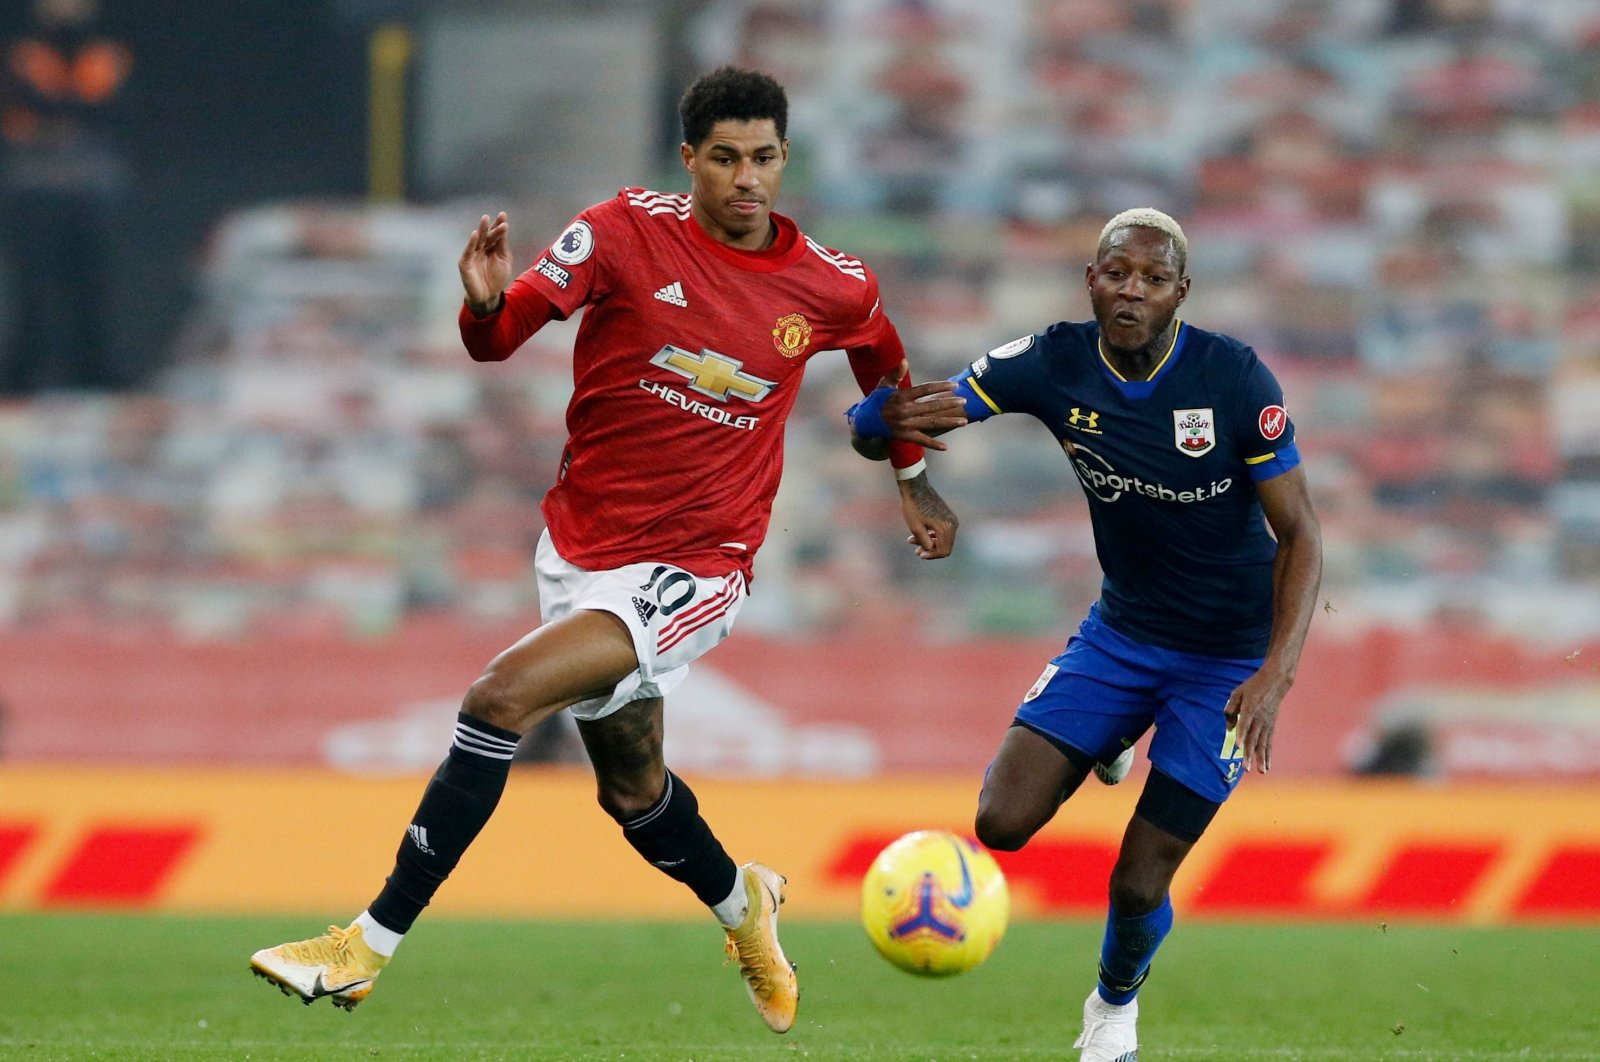 Manchester United's Marcus Rashford (L) goes past Southampton's Moussa Djenepo during their Premier League match, Old Trafford, Manchester, Feb. 2, 2021.